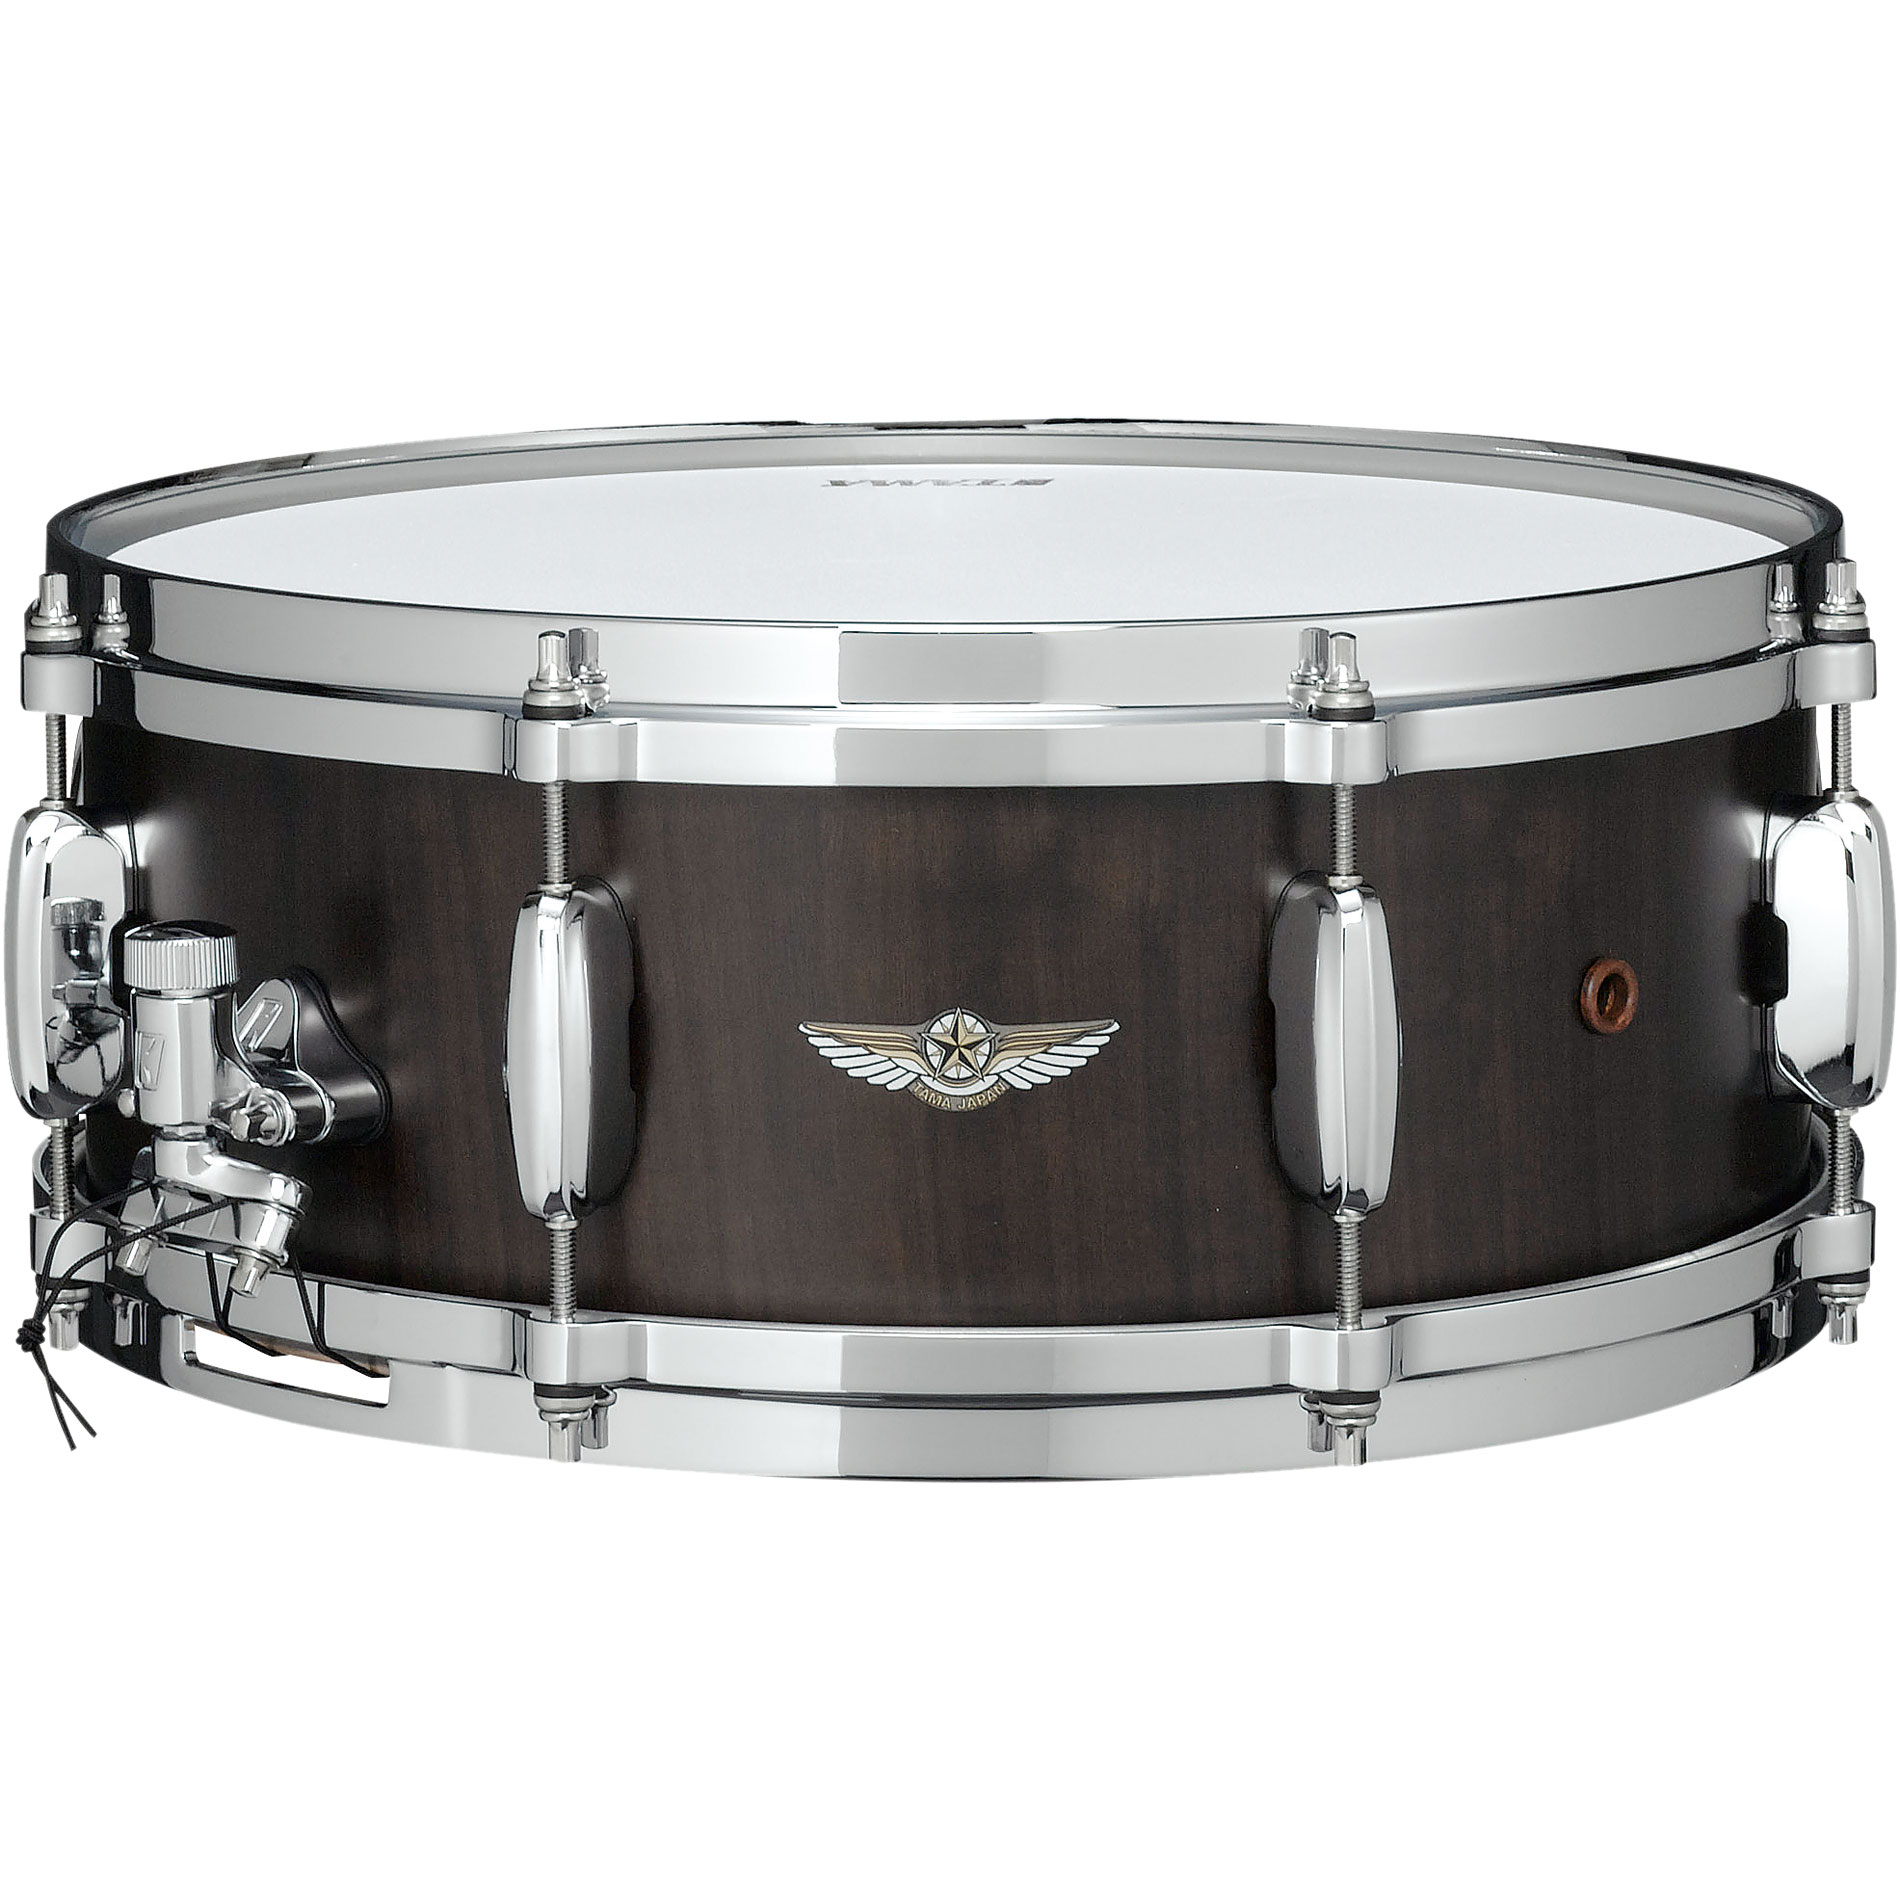 "Tama 5.5"" x 14"" Star Walnut Snare Drum"